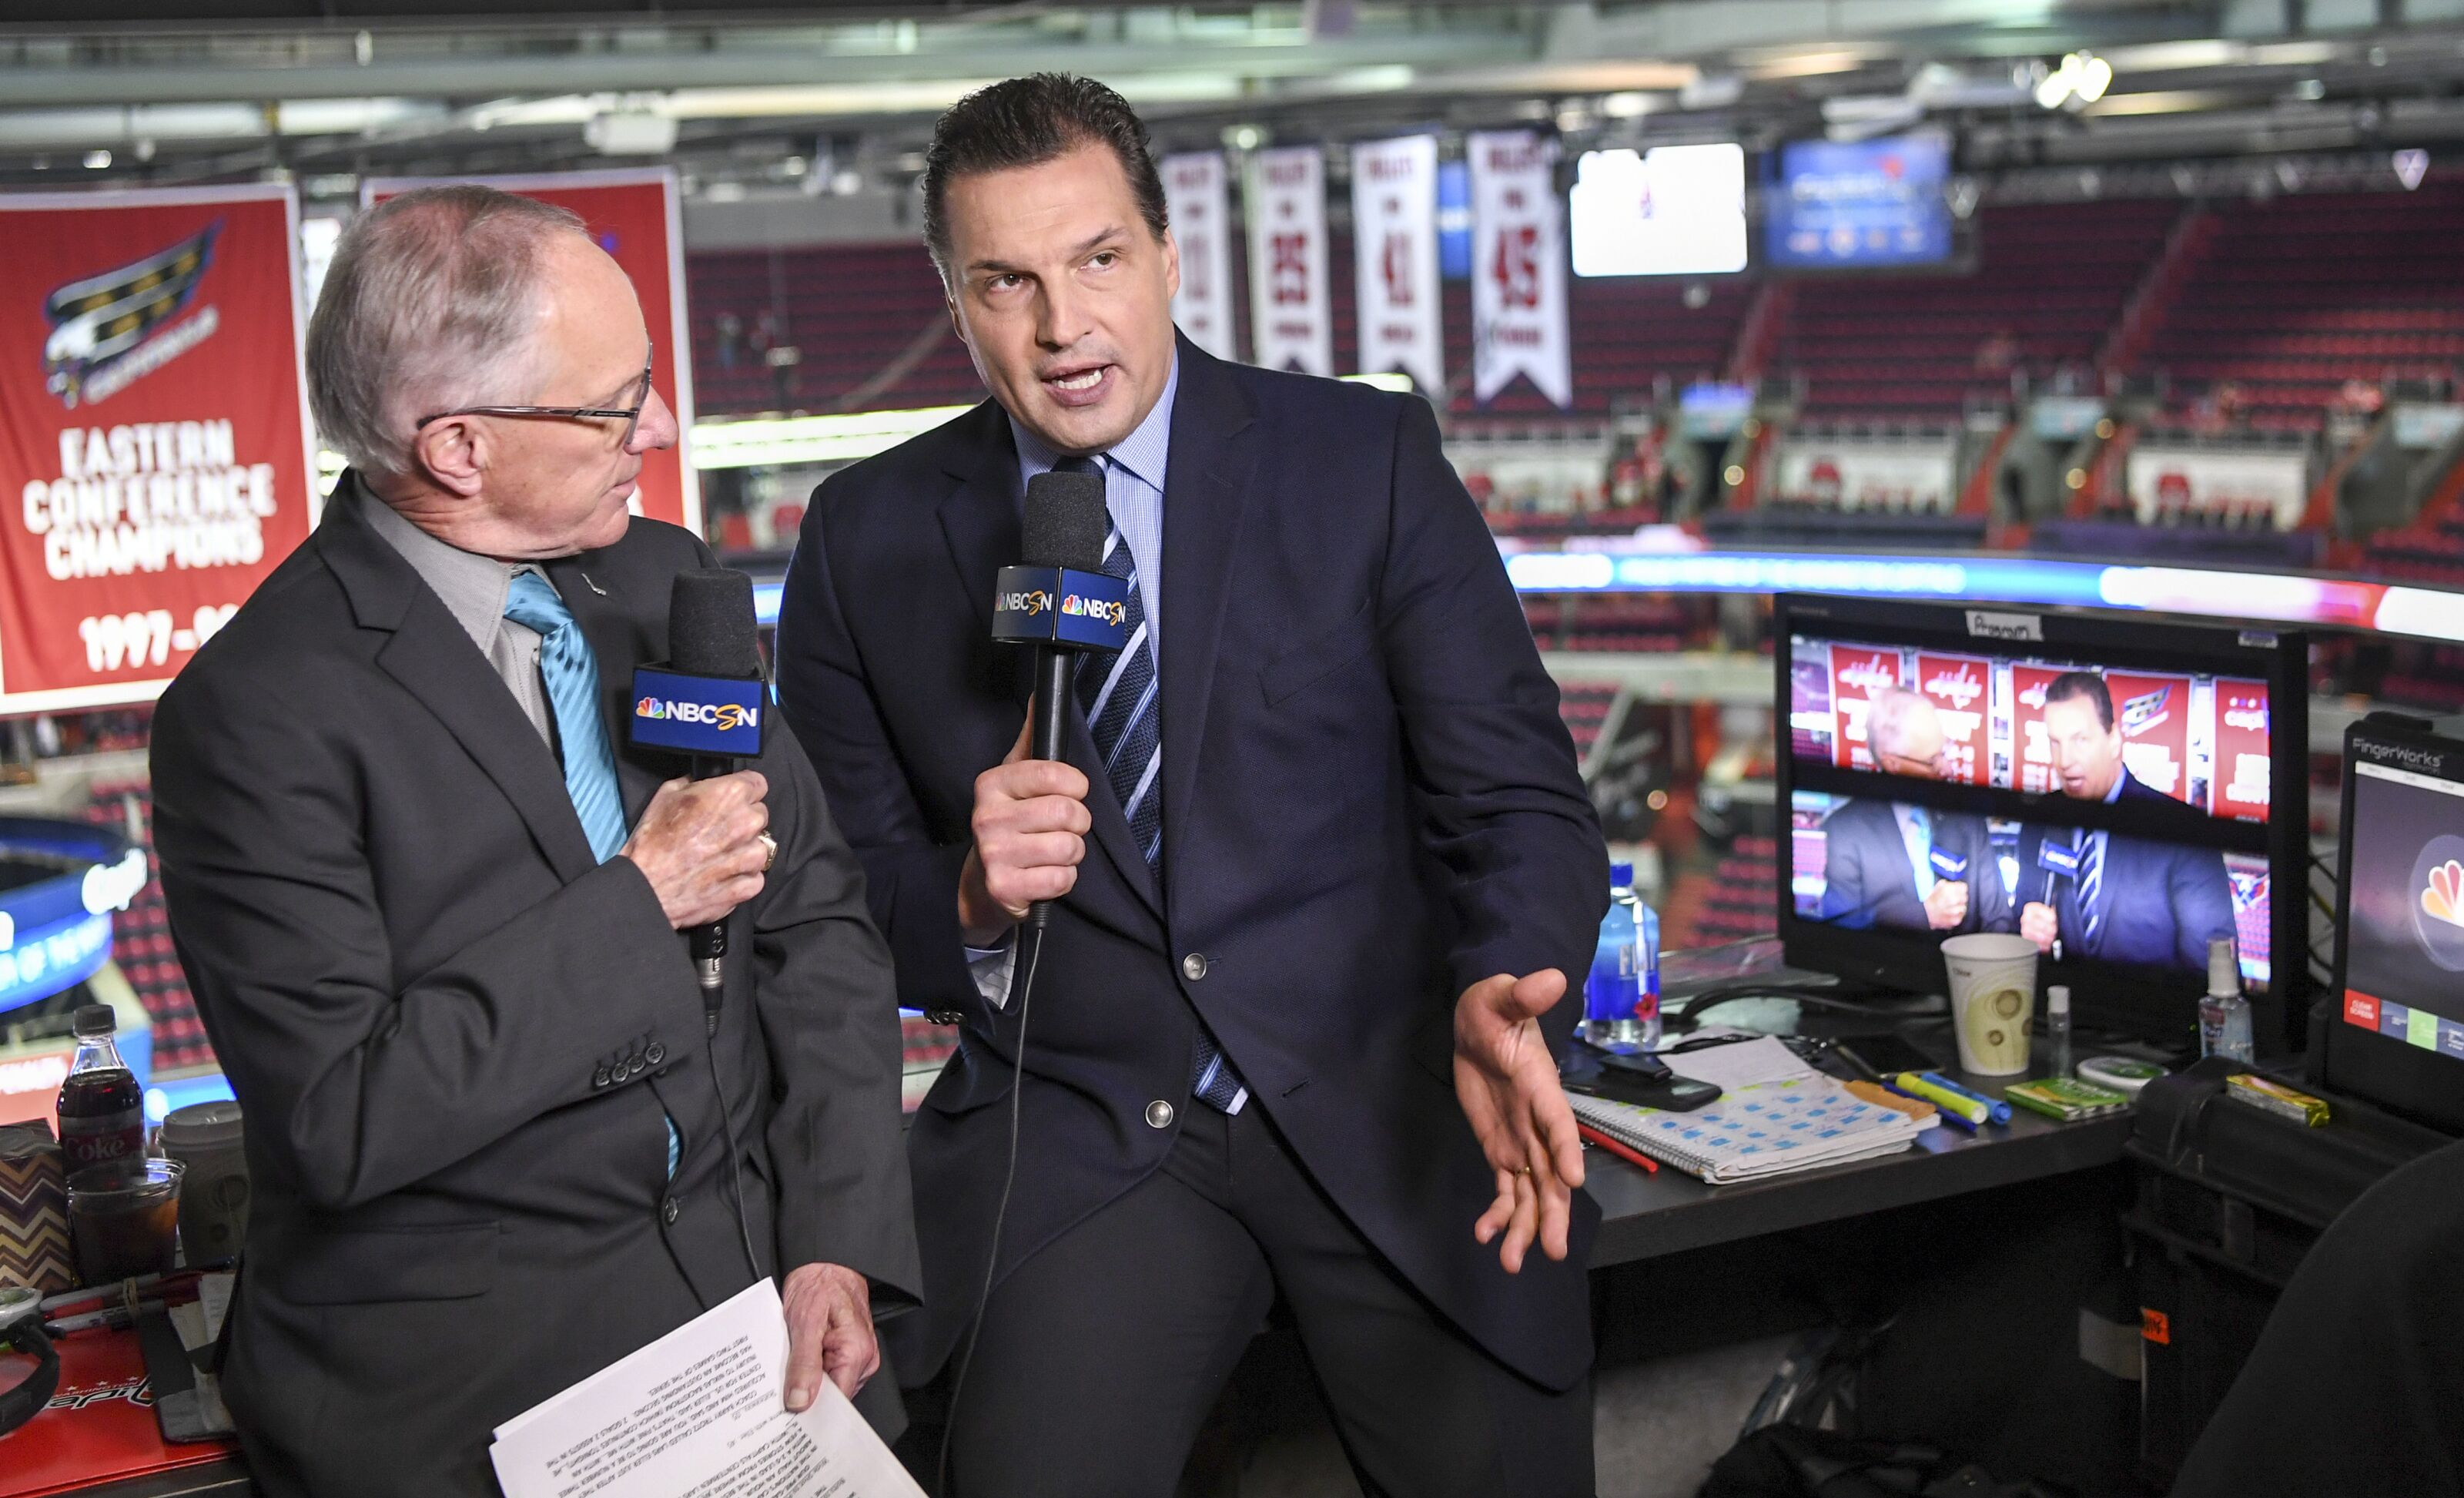 St. Louis Blues: NBC Misses Mark Again With Broadcast Schedule